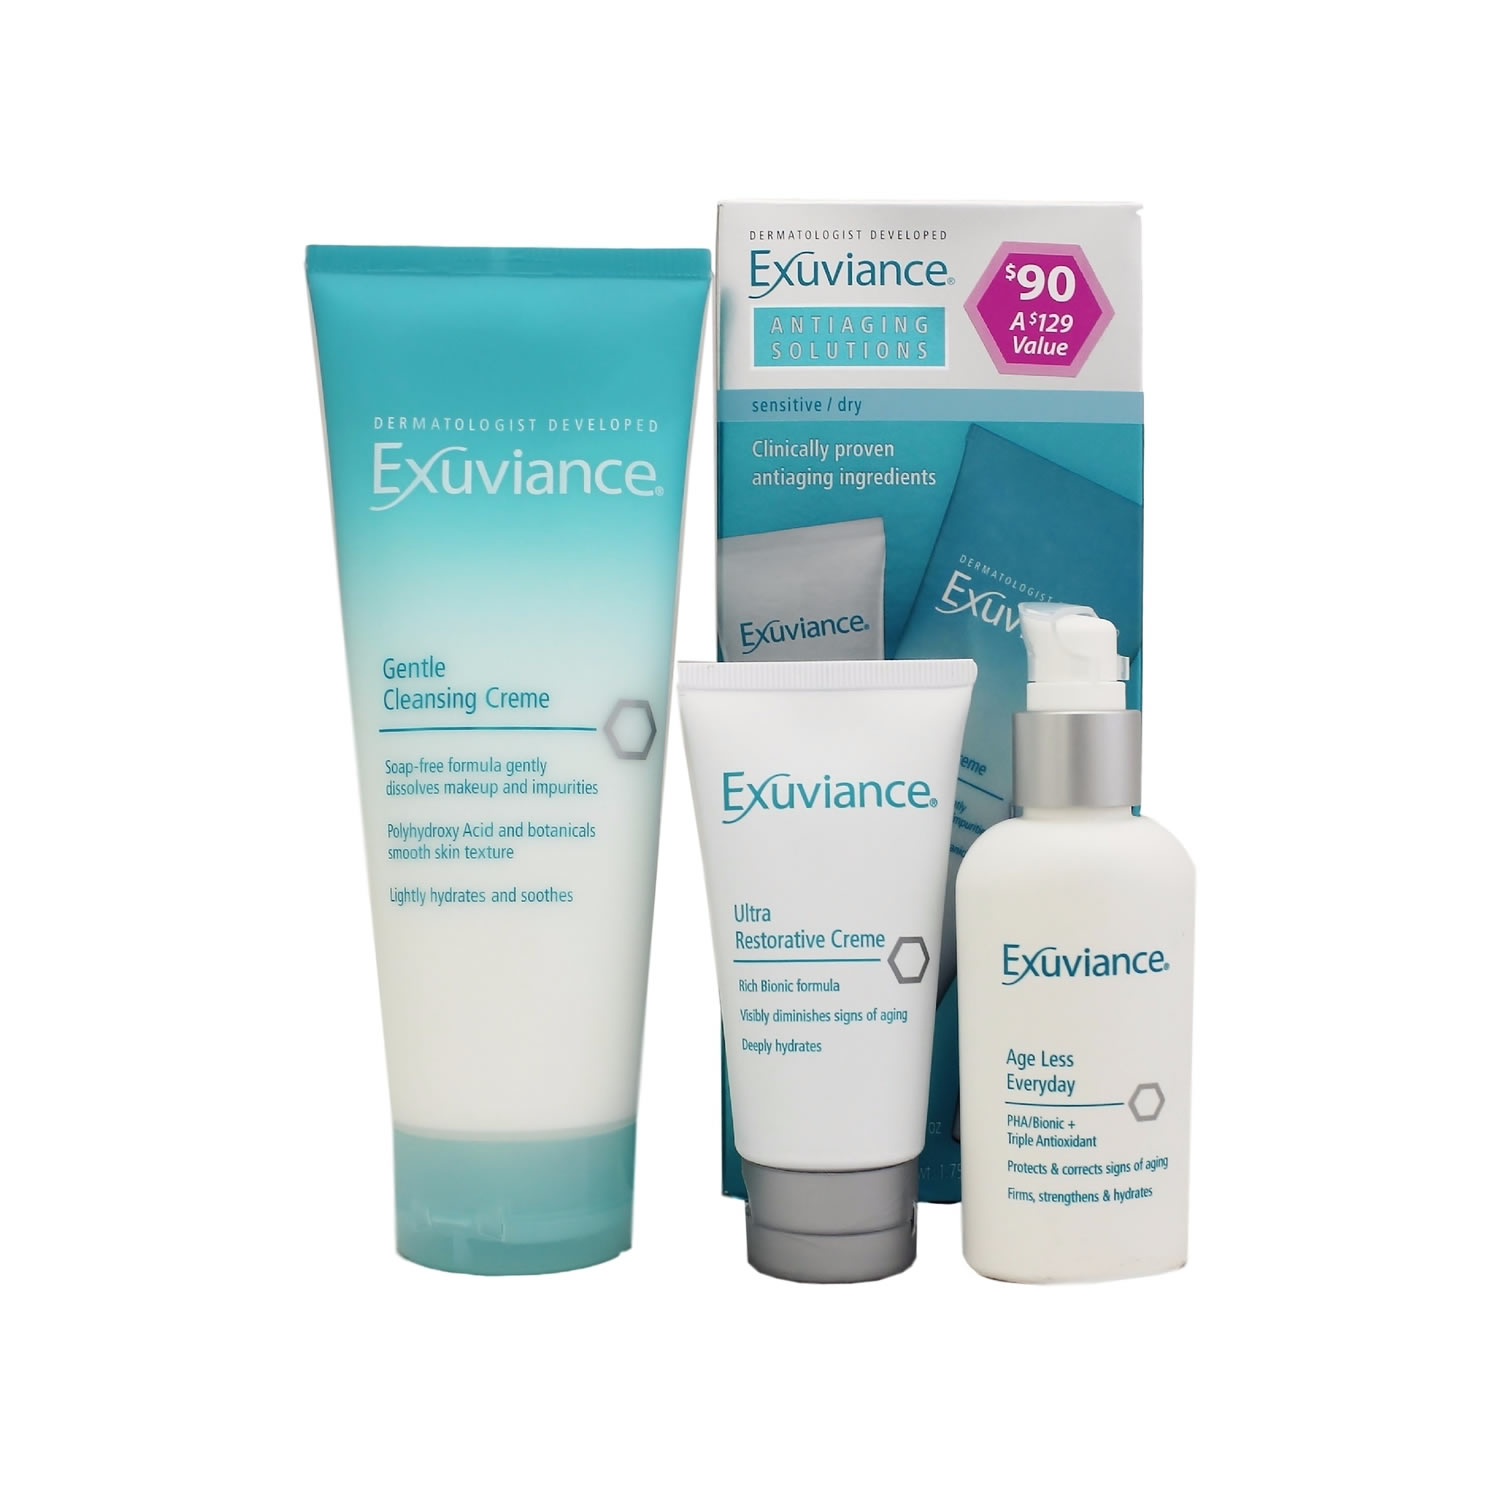 Exuviance ANTIAGING SOLUTIONS (set)